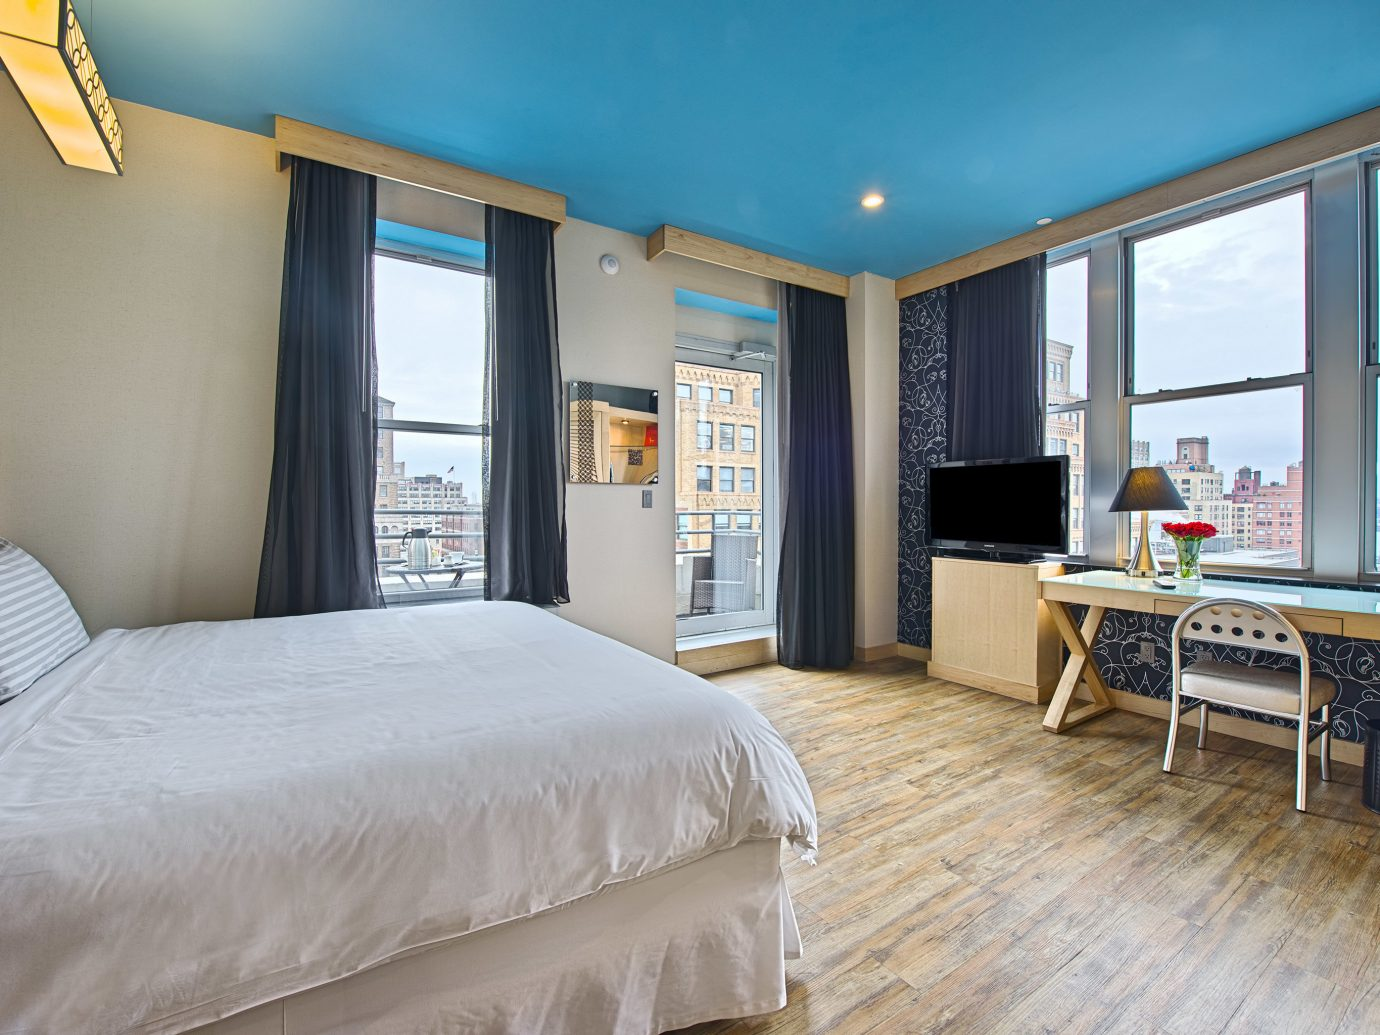 Bedroom Budget City Classic Family Family Travel Hotels Scenic views indoor bed floor wall room window property ceiling estate real estate hotel Suite home living room cottage interior design Villa apartment condominium